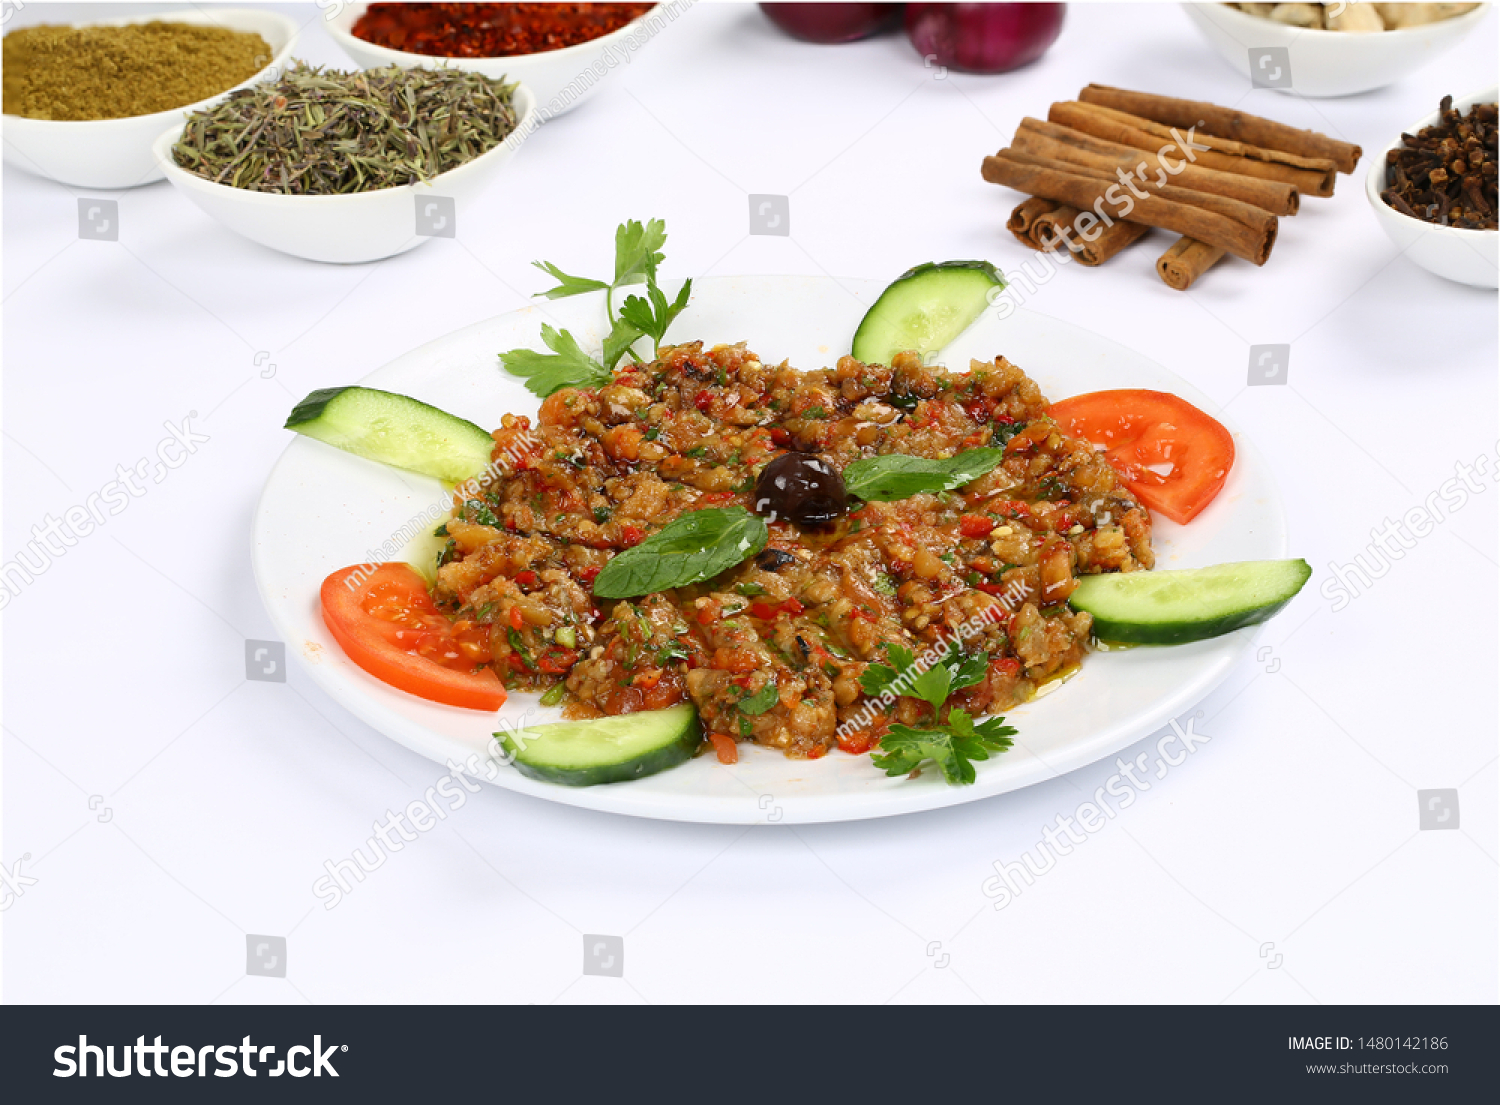 Acılı Ezme turkish meze acili ezme acuka muhammara stock photo (edit